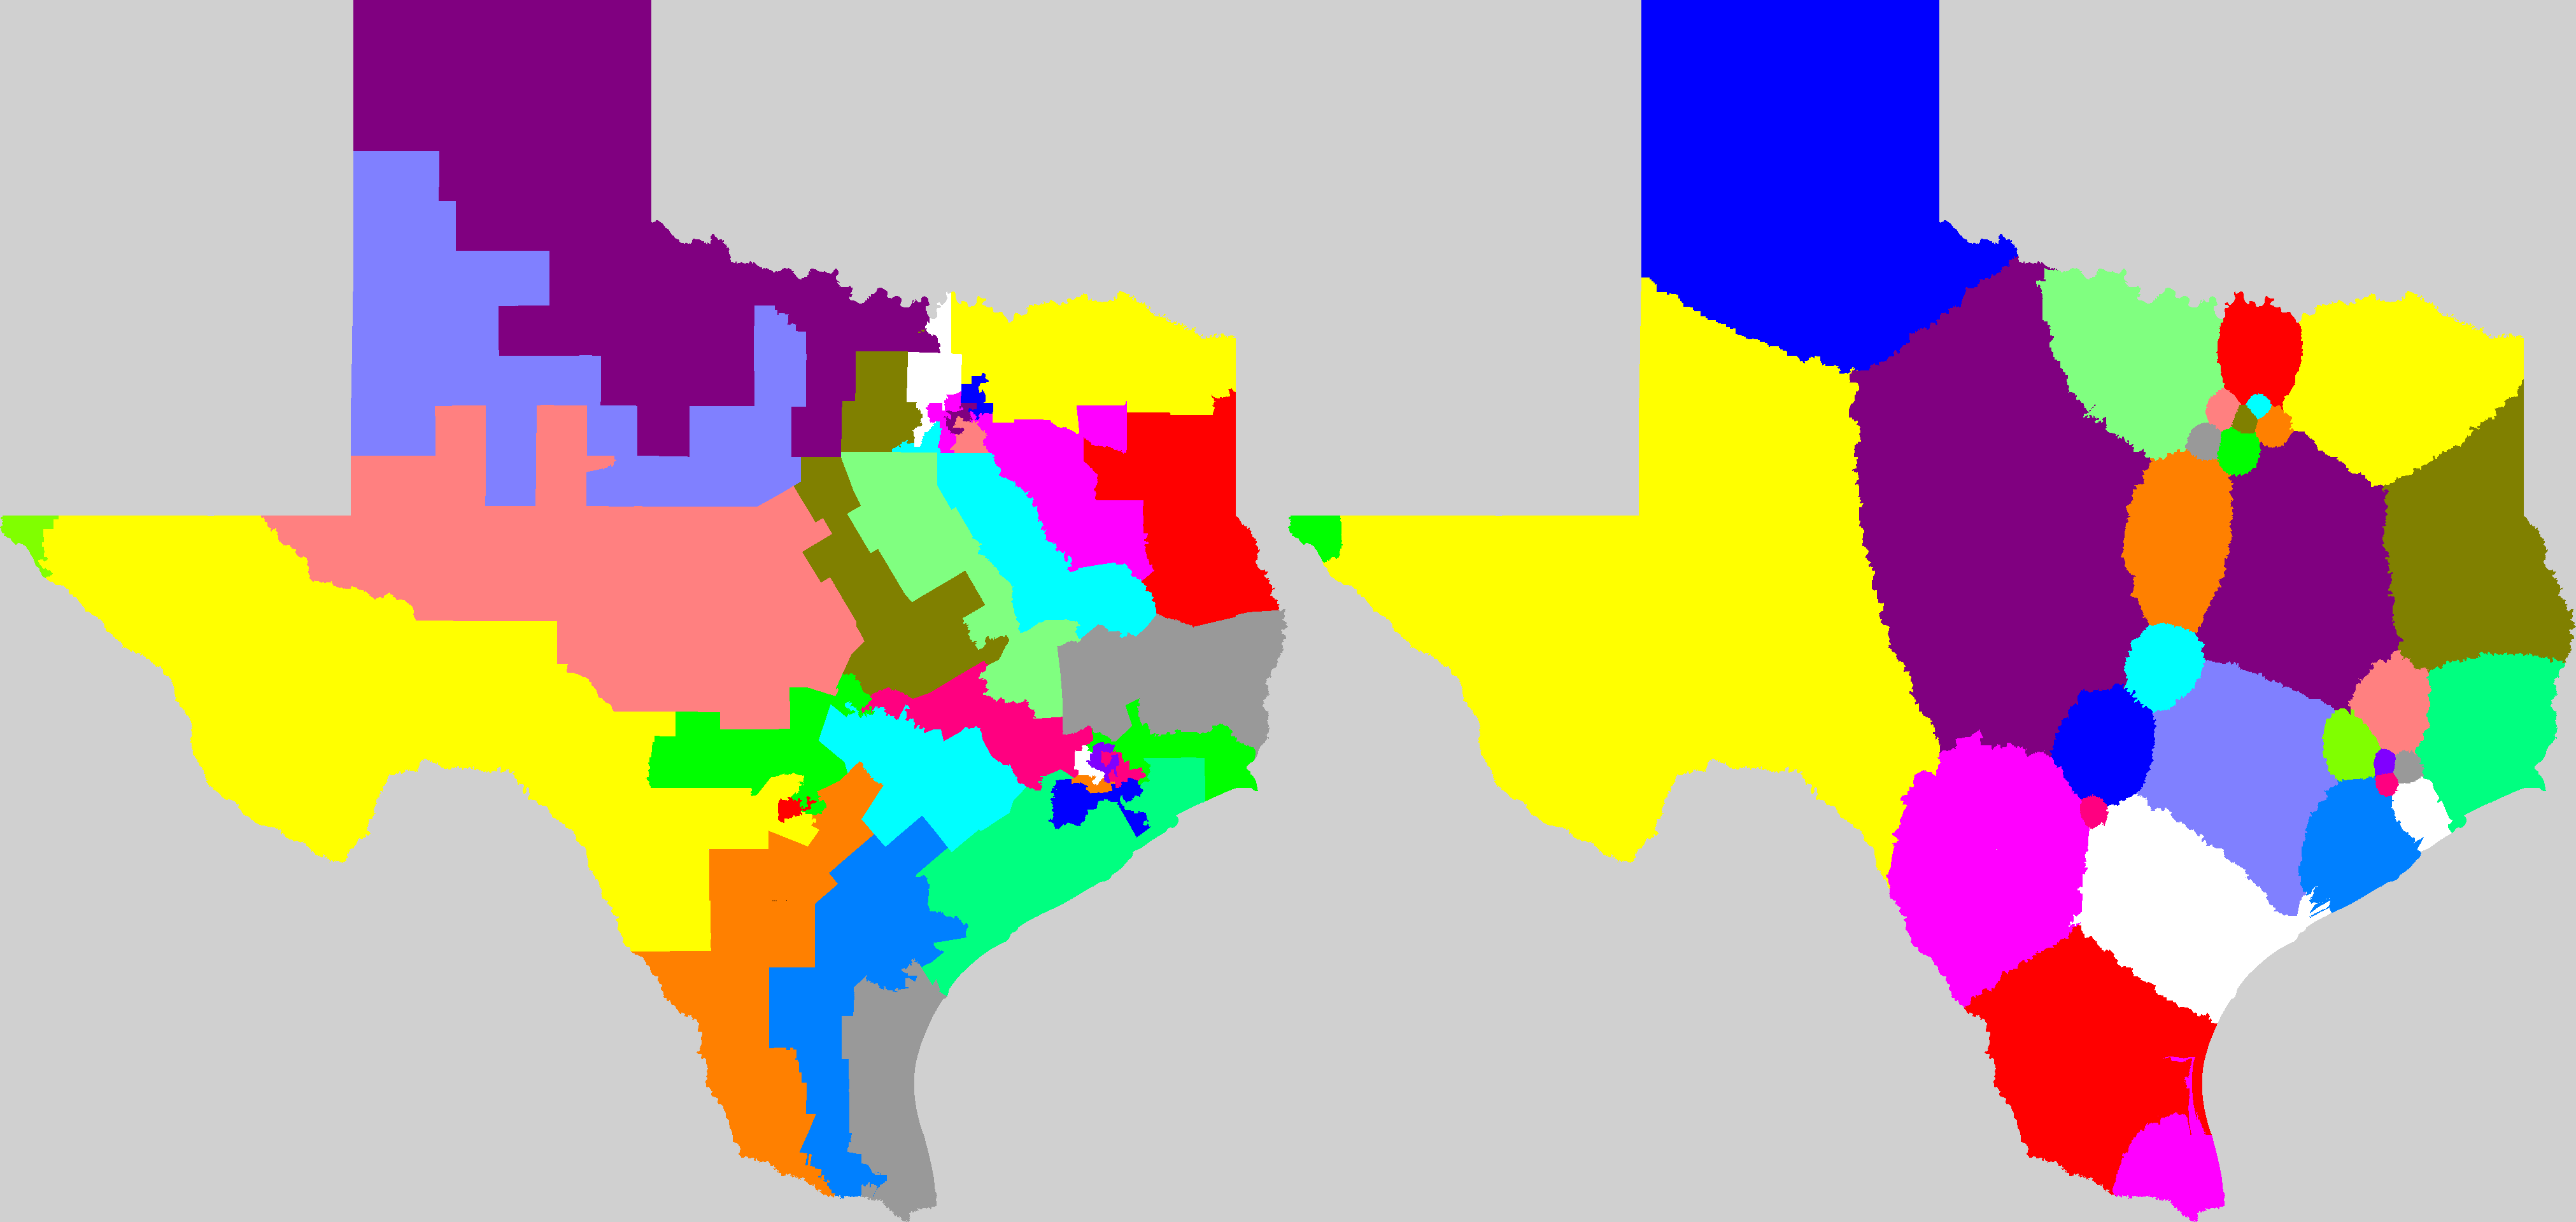 Texas us house district map Will County Politics Maps of Illinois Congressional Districts 2014